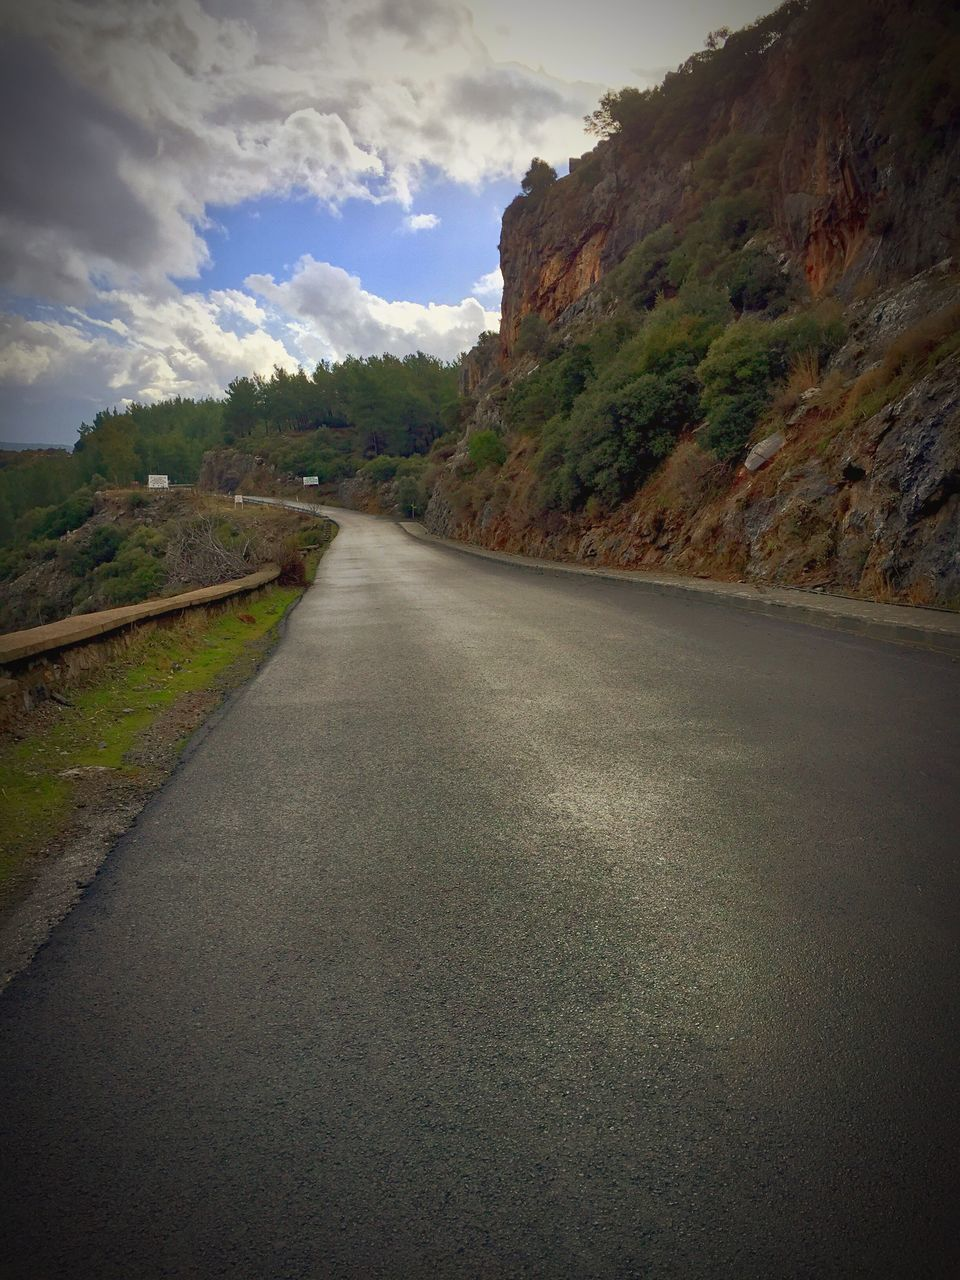 road, cloud - sky, nature, landscape, no people, the way forward, sky, outdoors, motion, scenics, tree, stream - flowing water, day